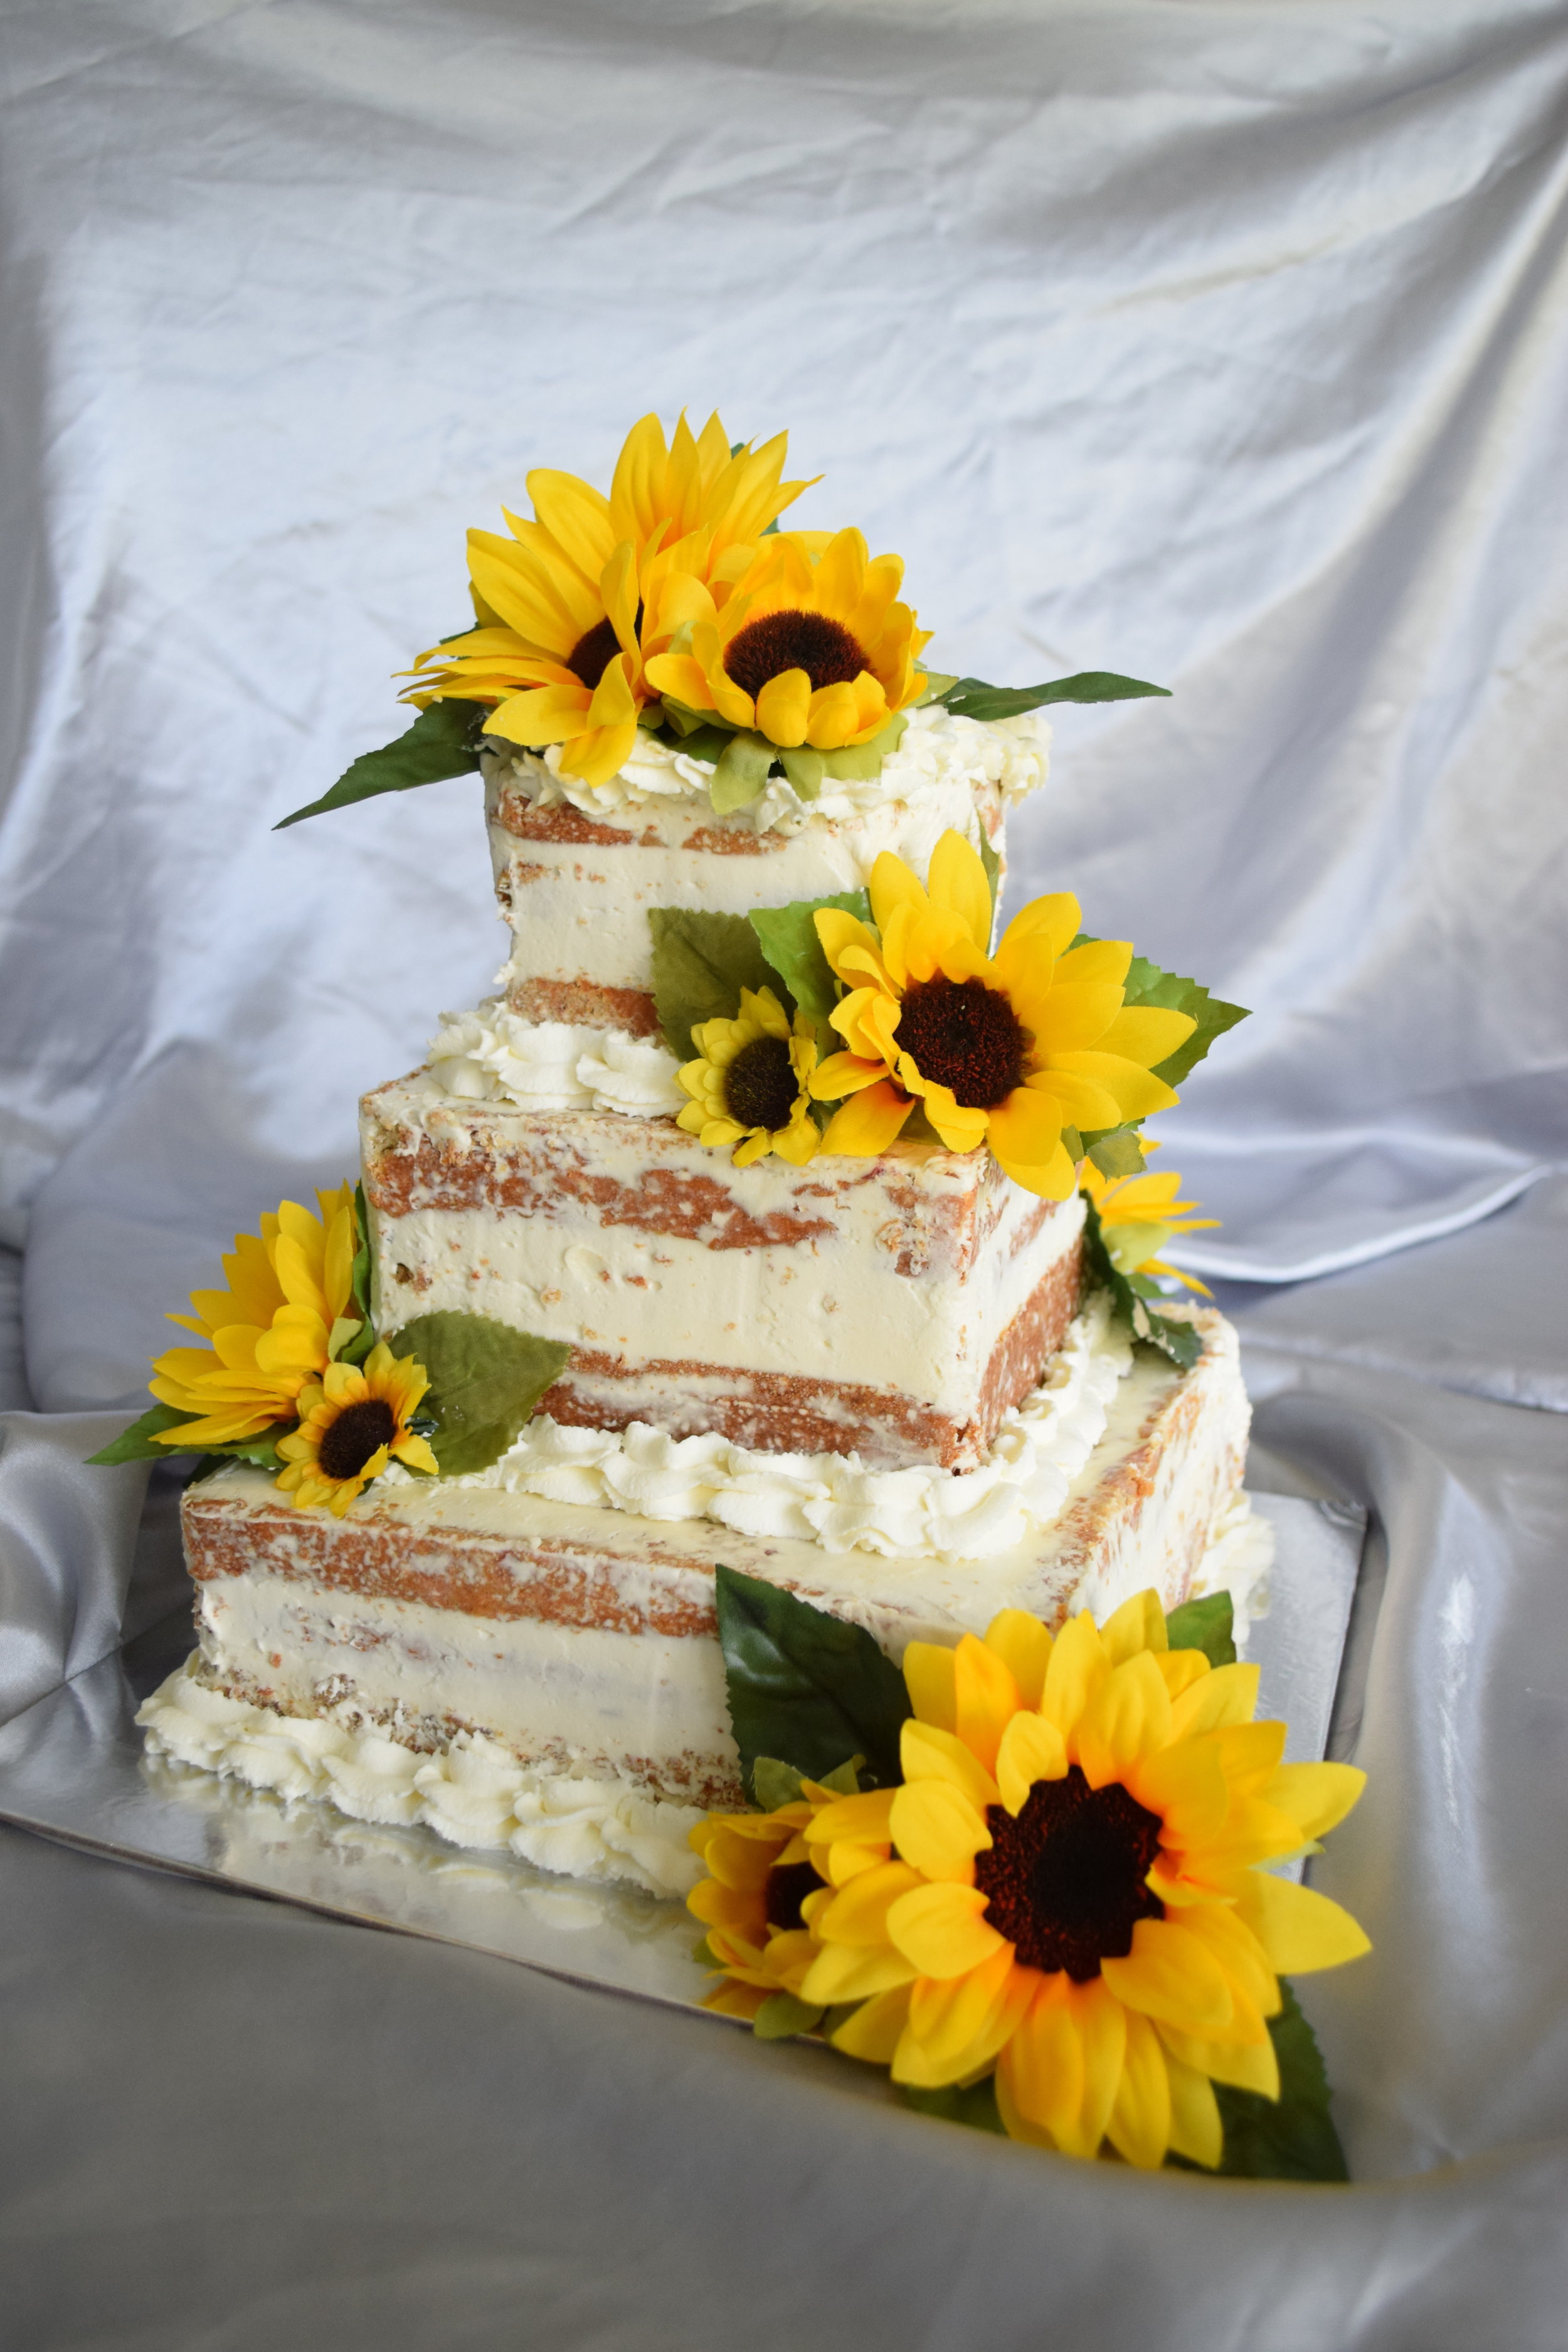 Strawberries and Cream Naked Wedding Cake with Whipped Cream Boarder and Sunflower Accents